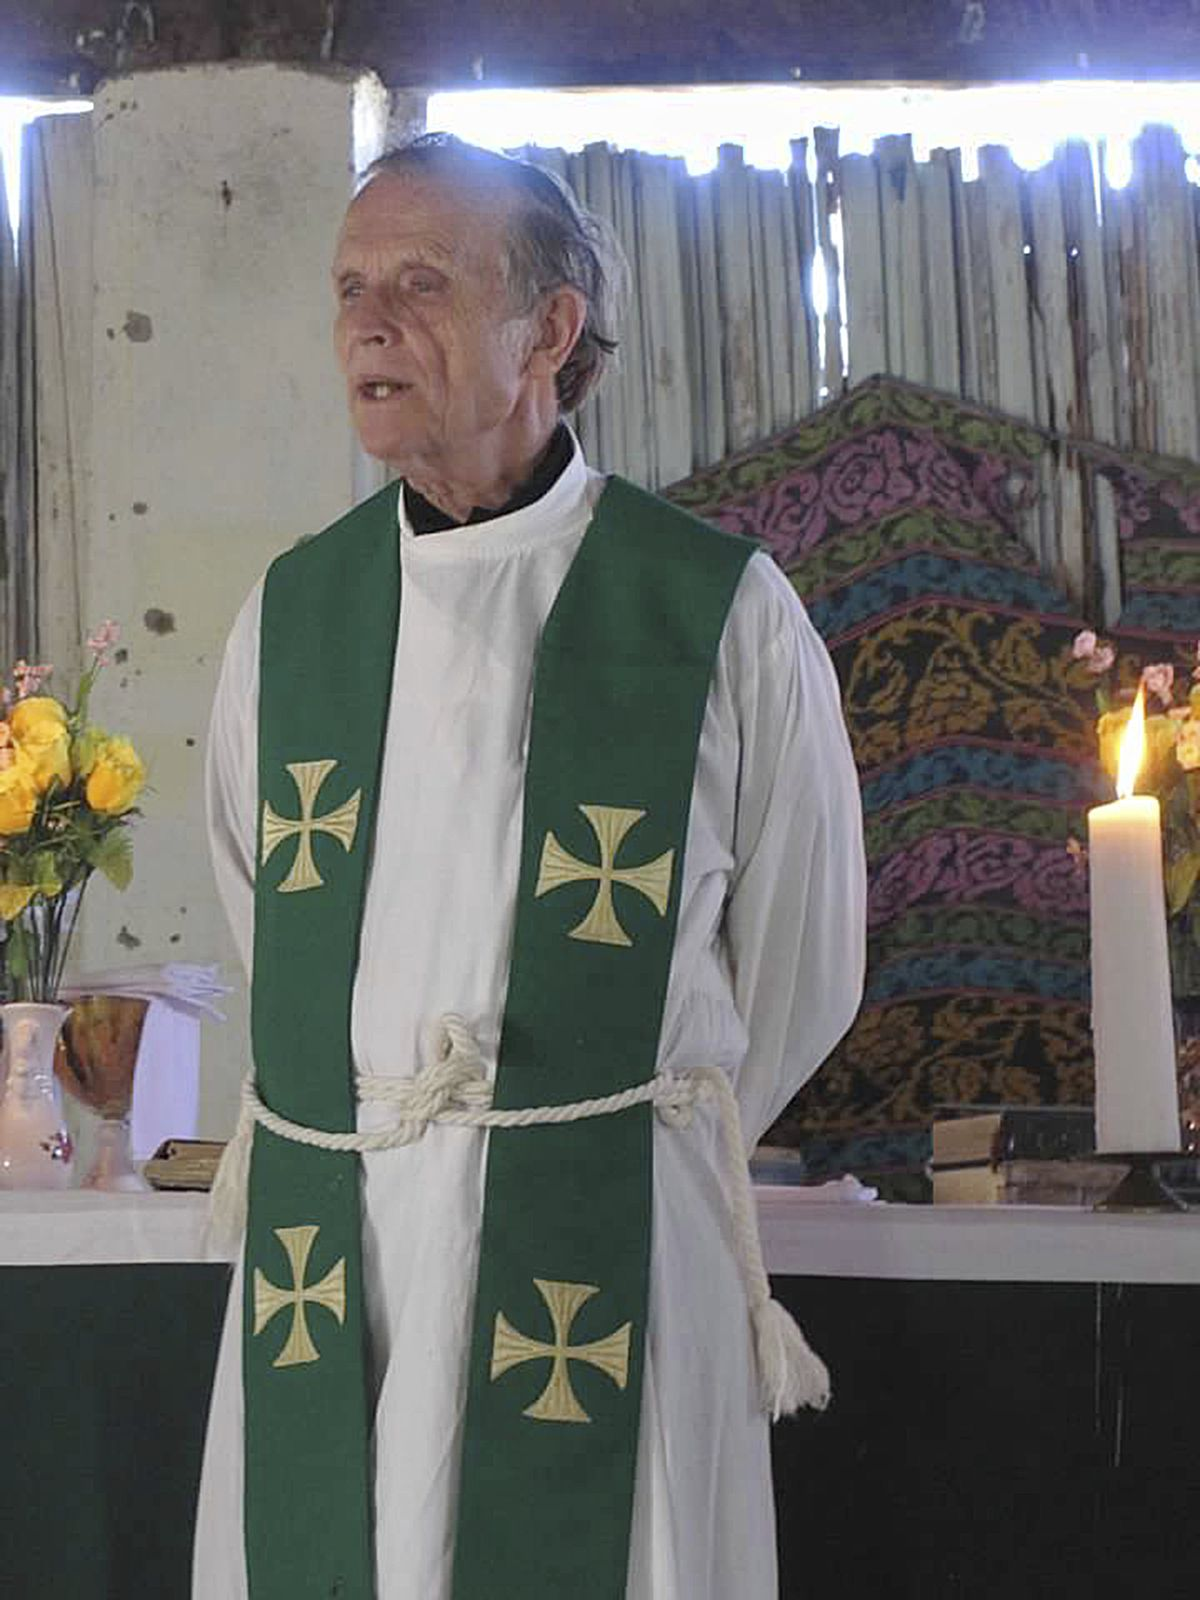 This 2013 photo provided to The Associated Press shows now-defrocked Catholic priest Richard Daschbach leading a service at a church in Kutet, East Timor.